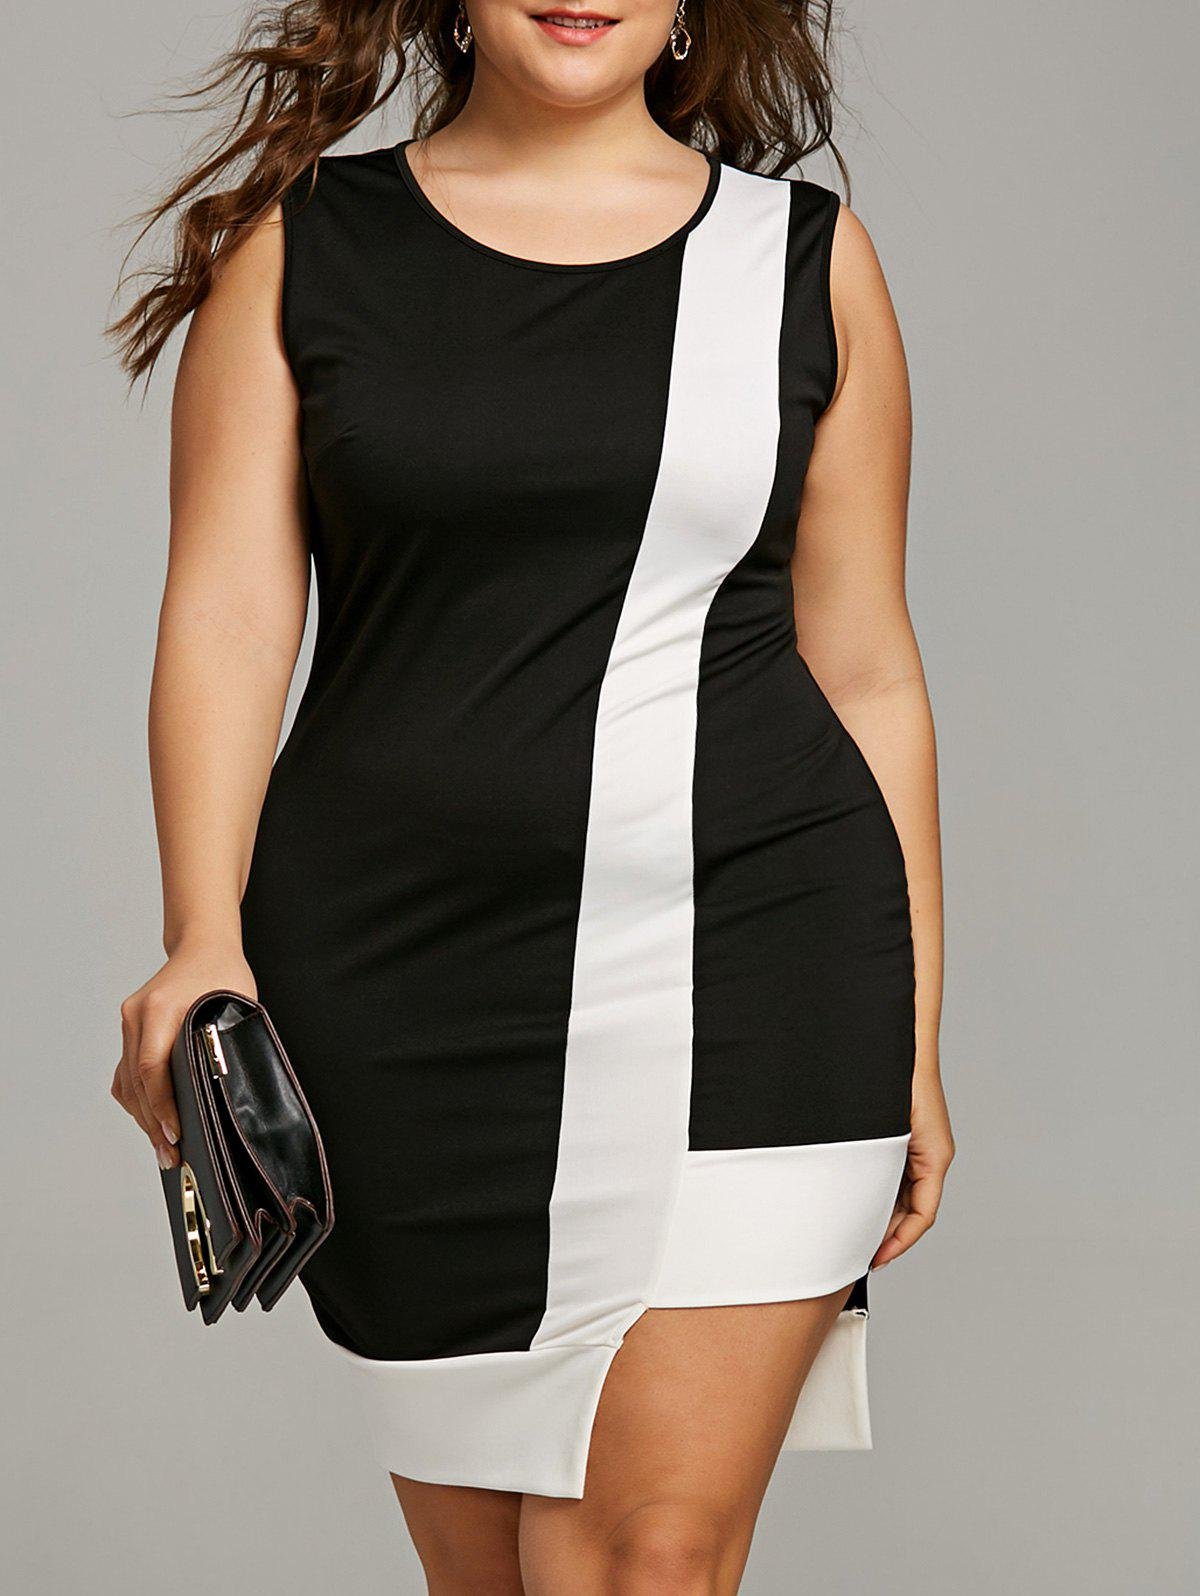 Unique Plus Size Sleeveless Two Tone Bodycon Dress